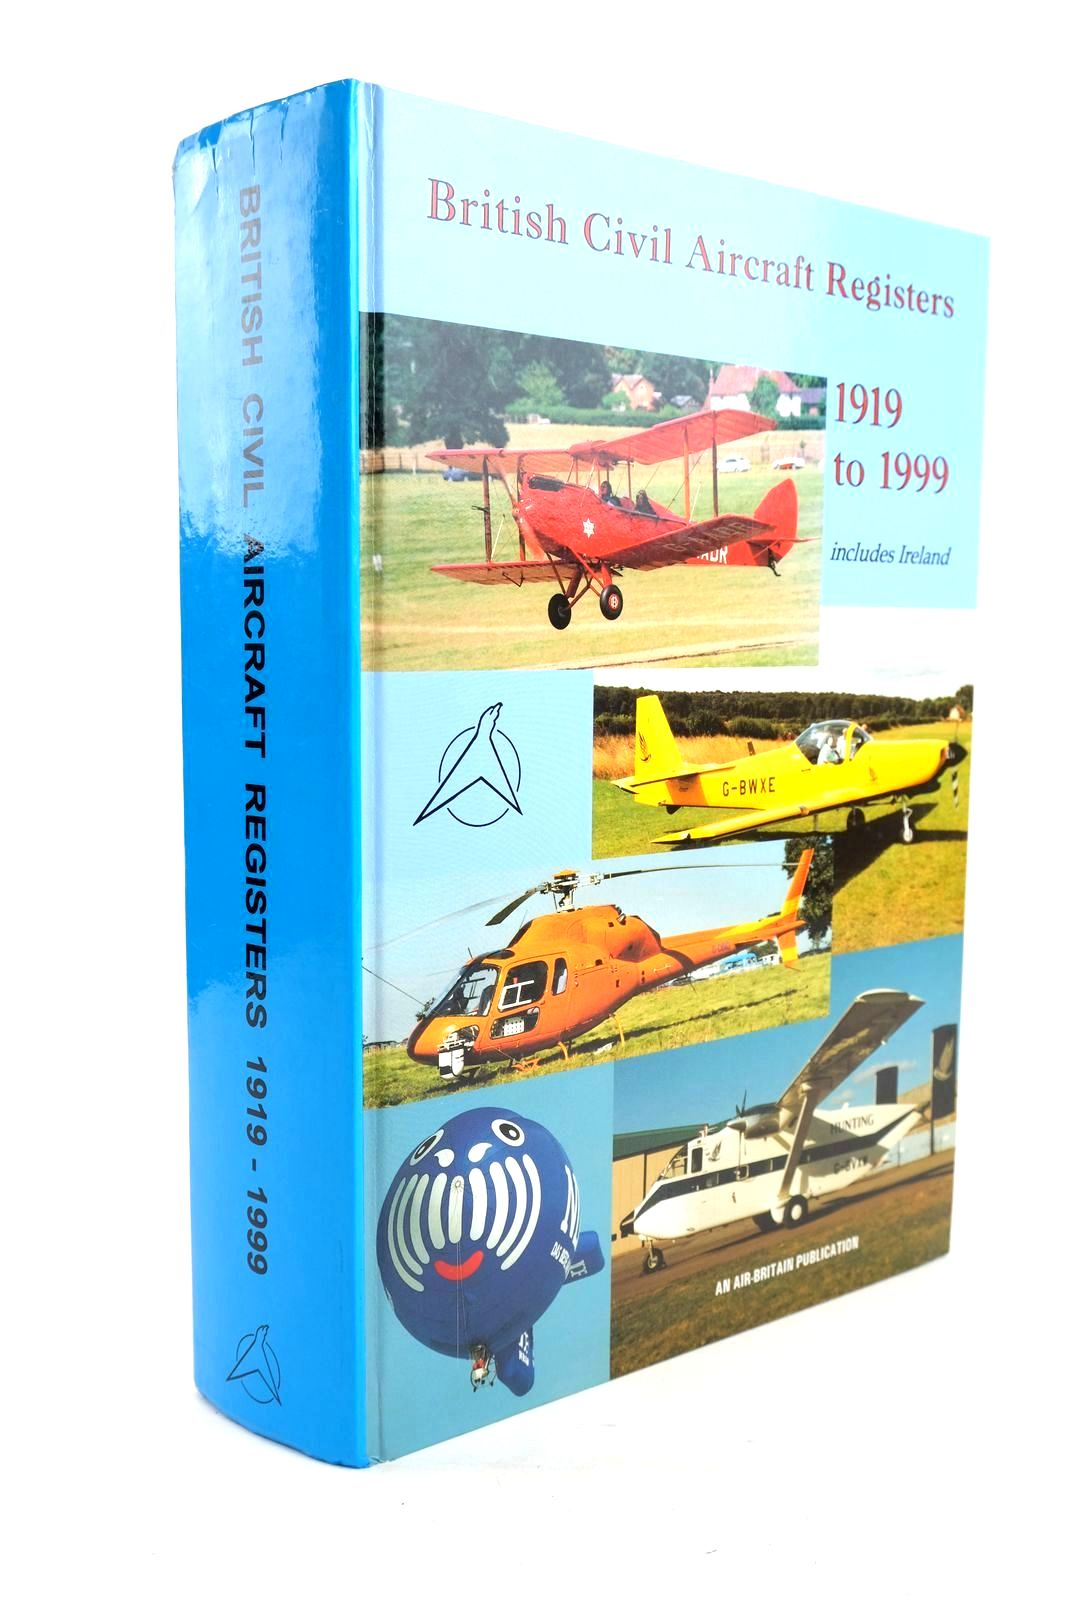 Photo of THE BRITISH CIVIL AIRCRAFT REGISTERS 1919-1999 written by Austen, Michael Evans, Kevin Fillmore, Malcolm P. published by Air-Britain (Historians) Ltd. (STOCK CODE: 1320165)  for sale by Stella & Rose's Books